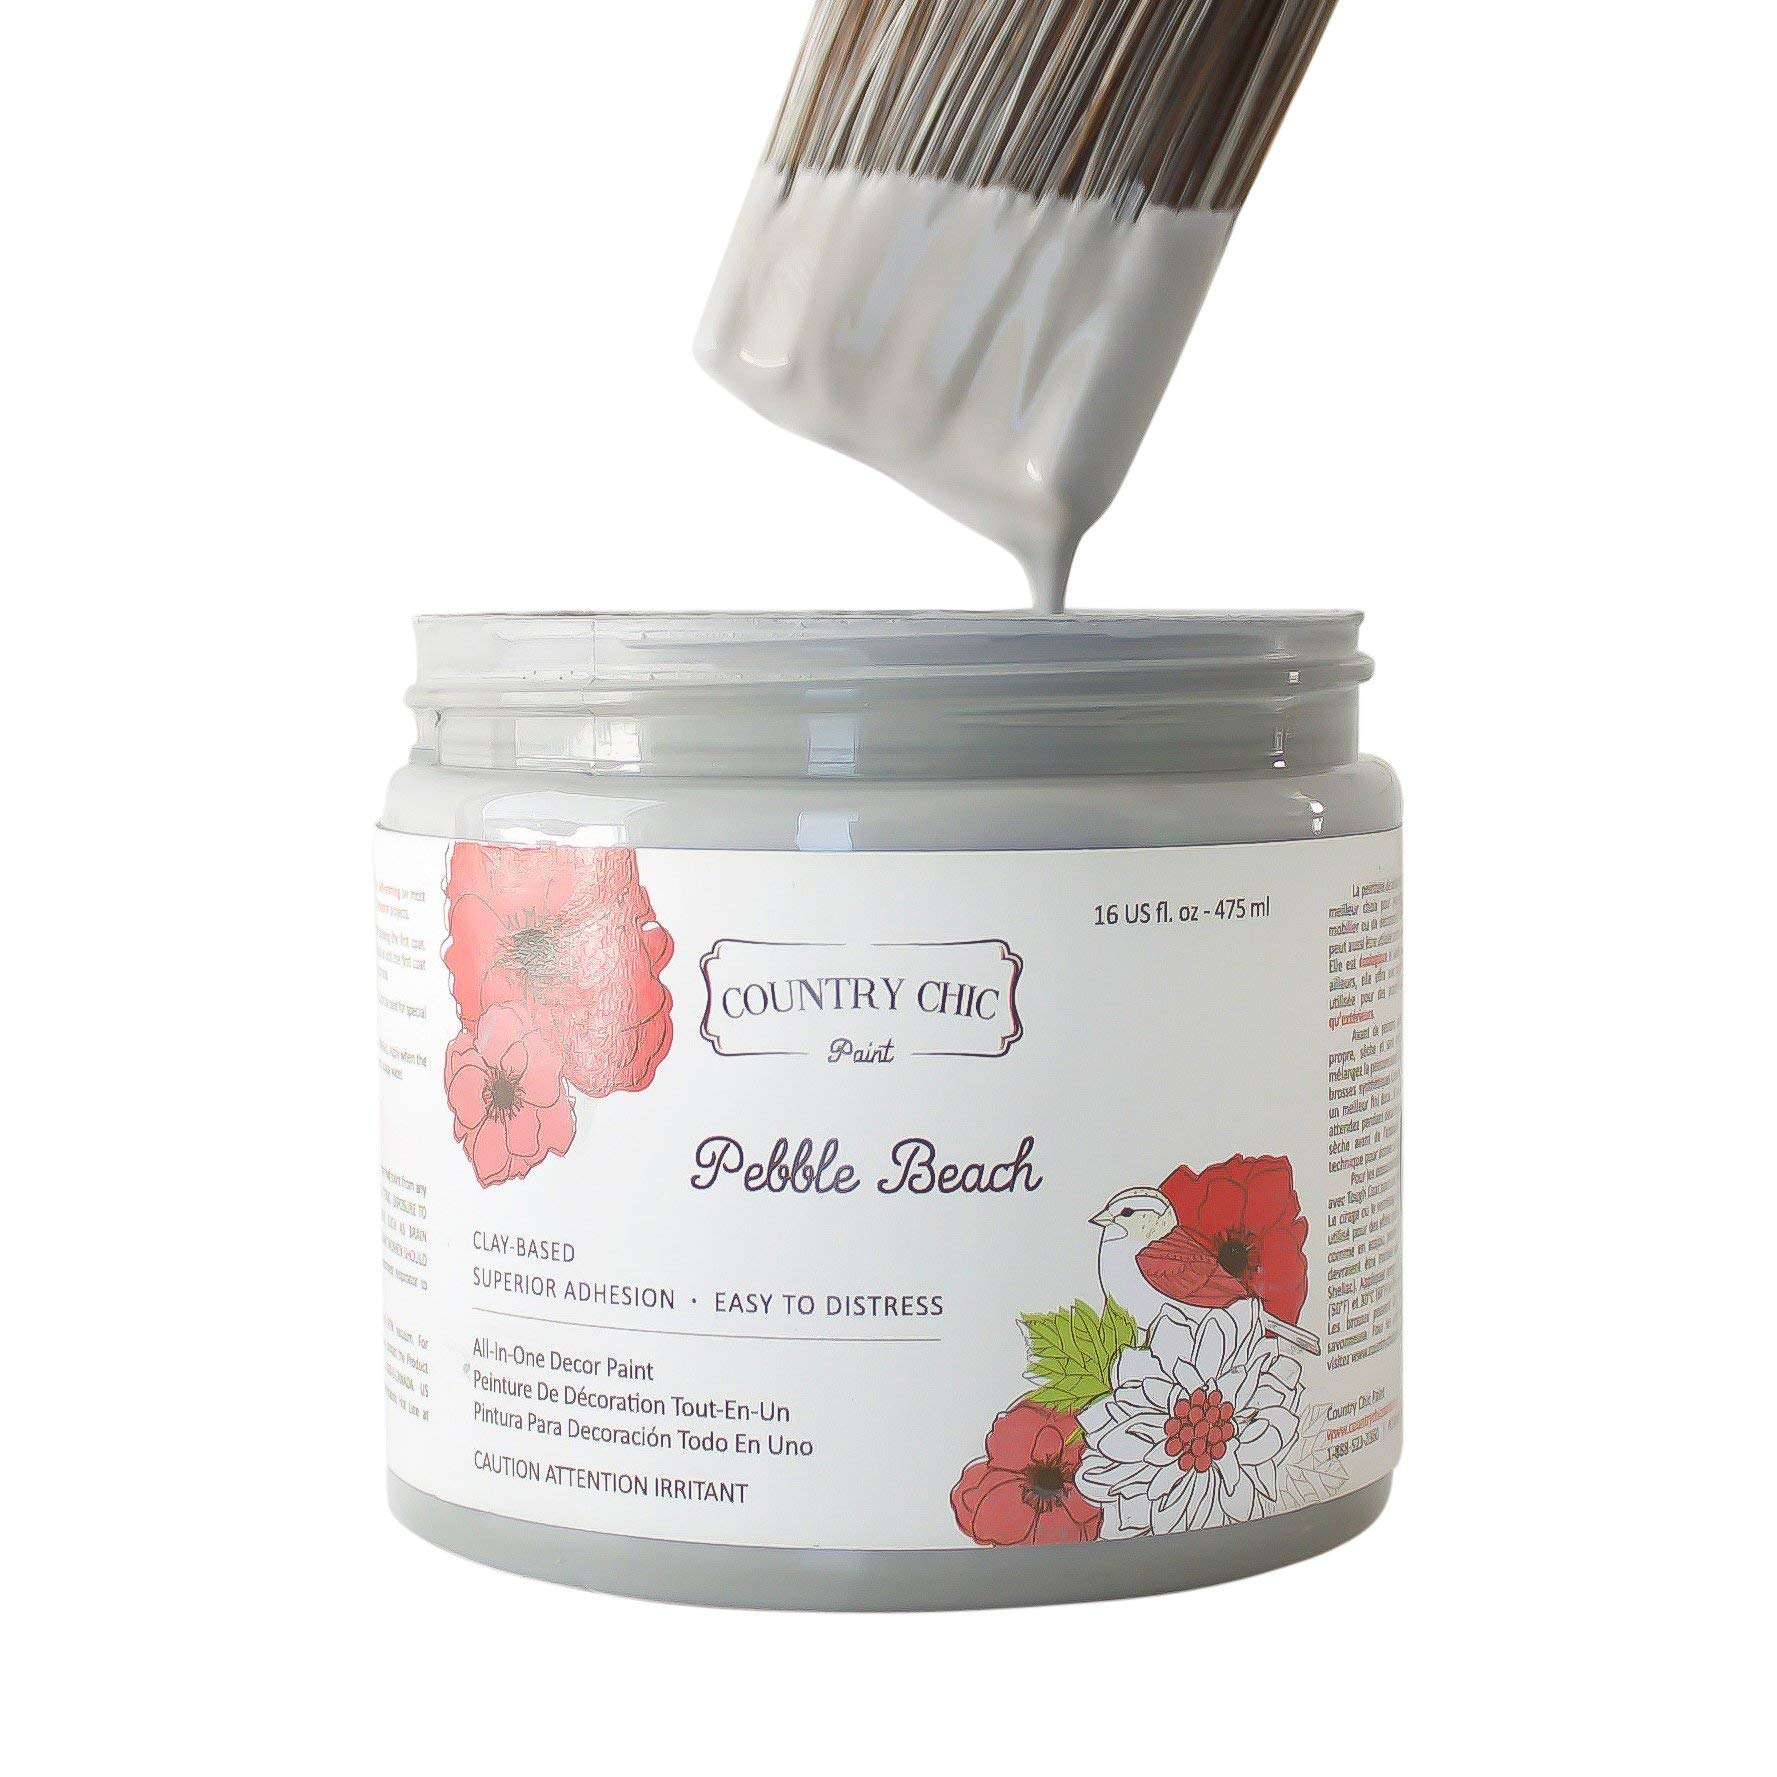 Chalk Style Paint - for Furniture, Home Decor, Crafts - Eco-Friendly - All-in-One - No Wax Needed (Pebble Beach [Grey], Pint (16 oz))